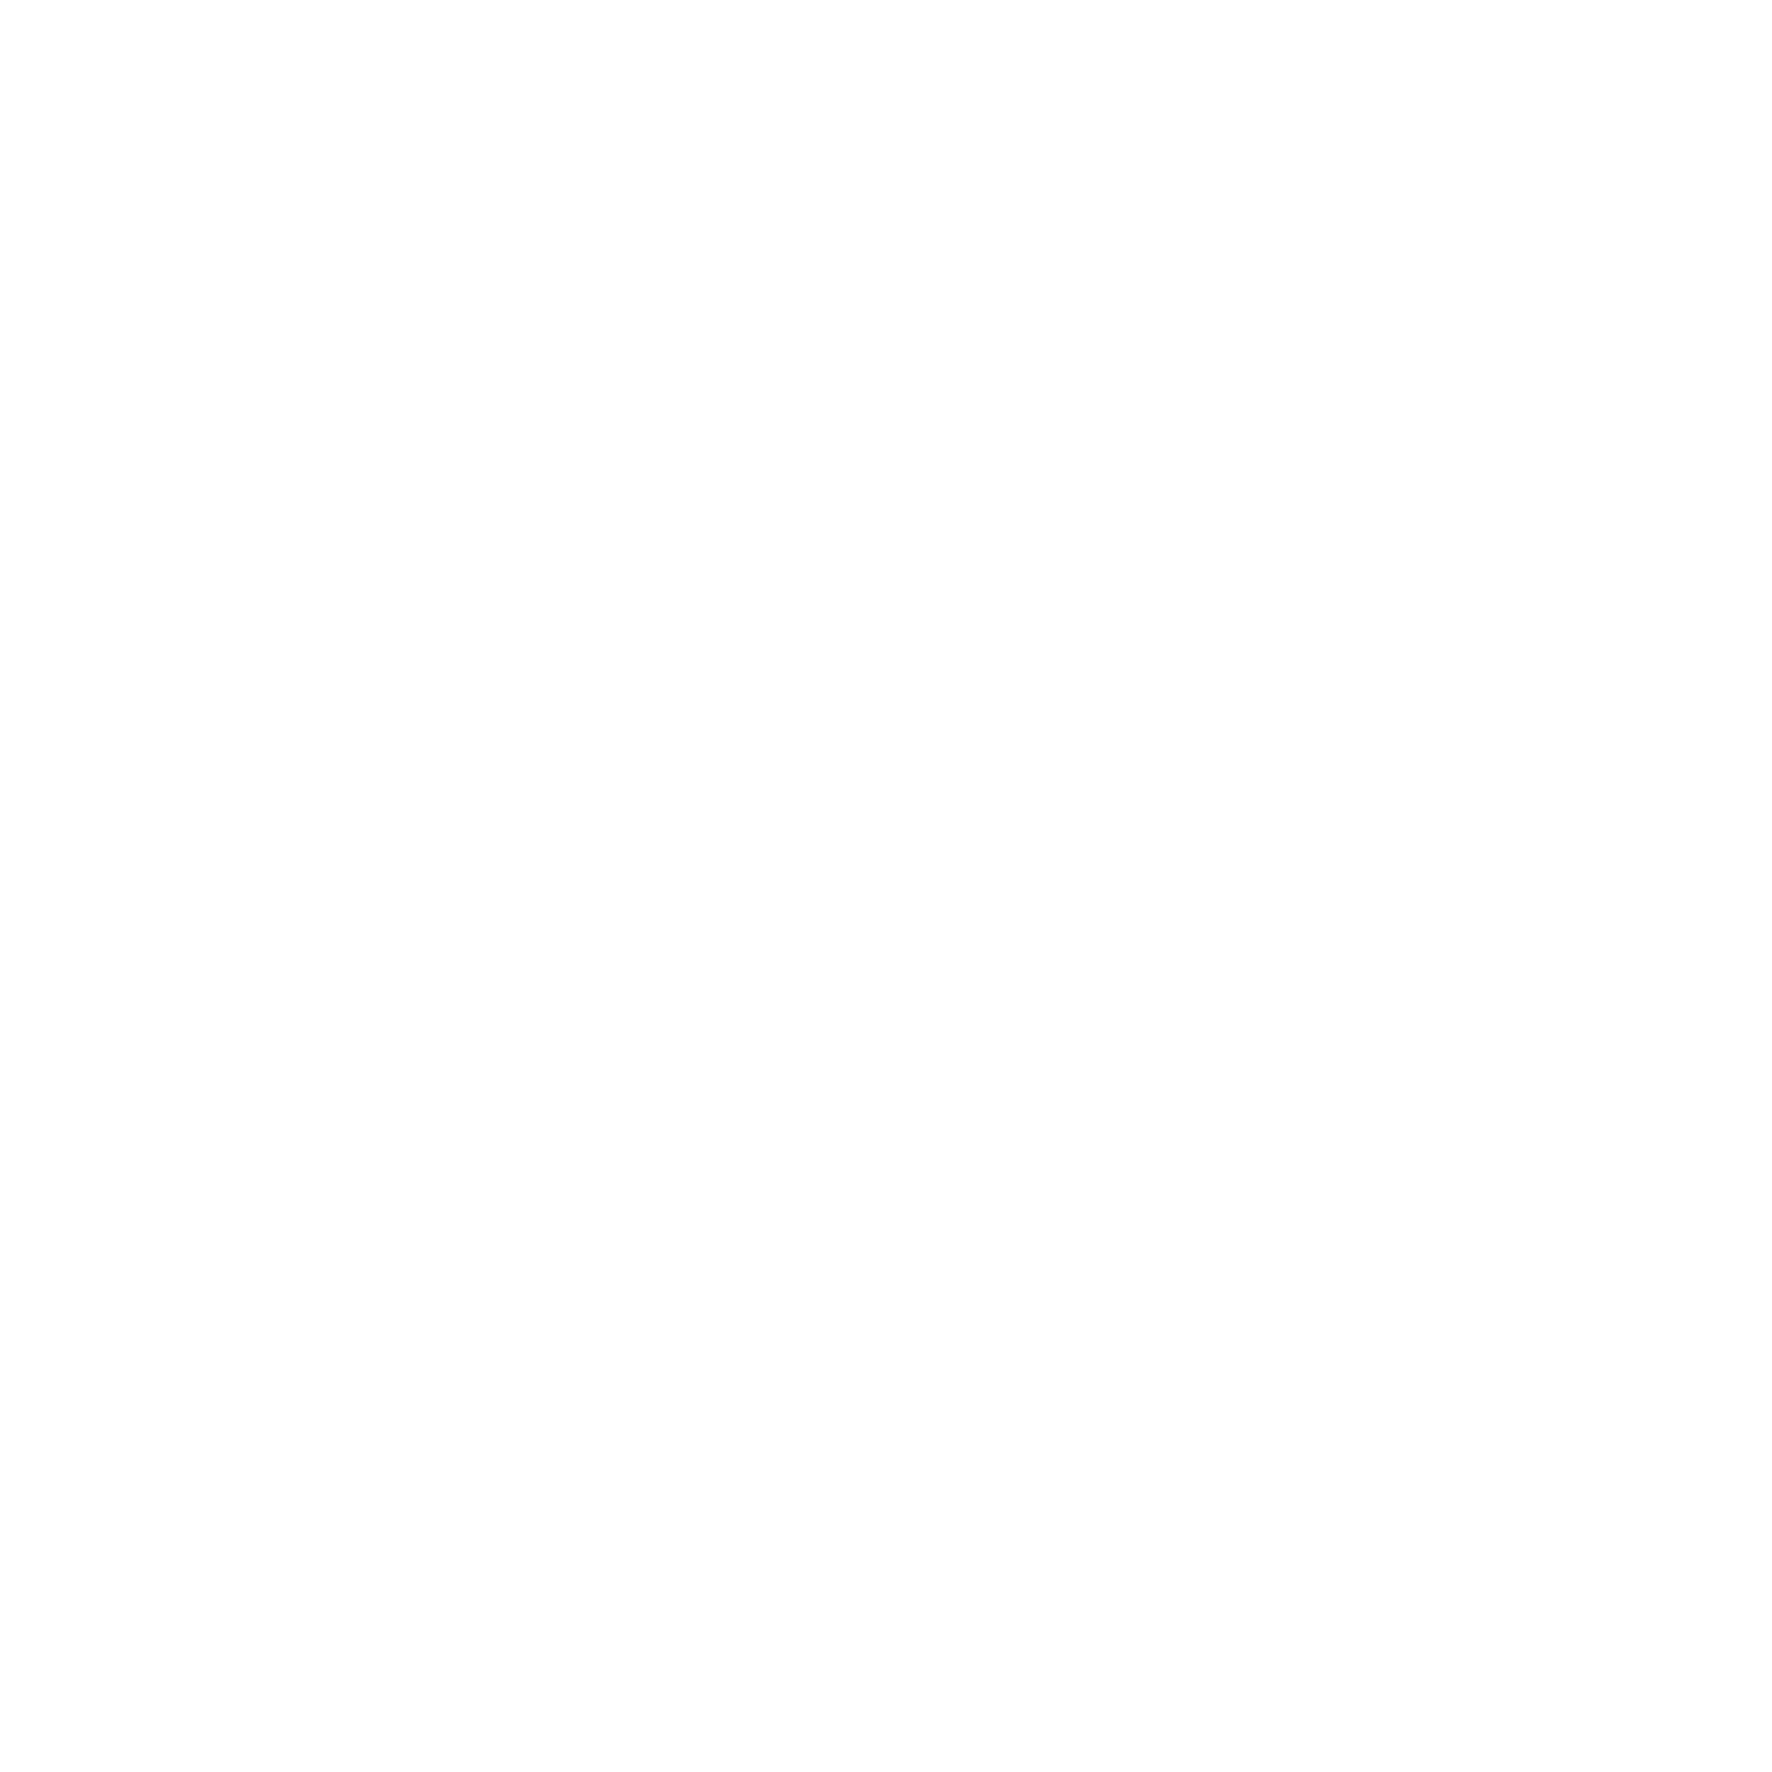 4C Innovation Consulting